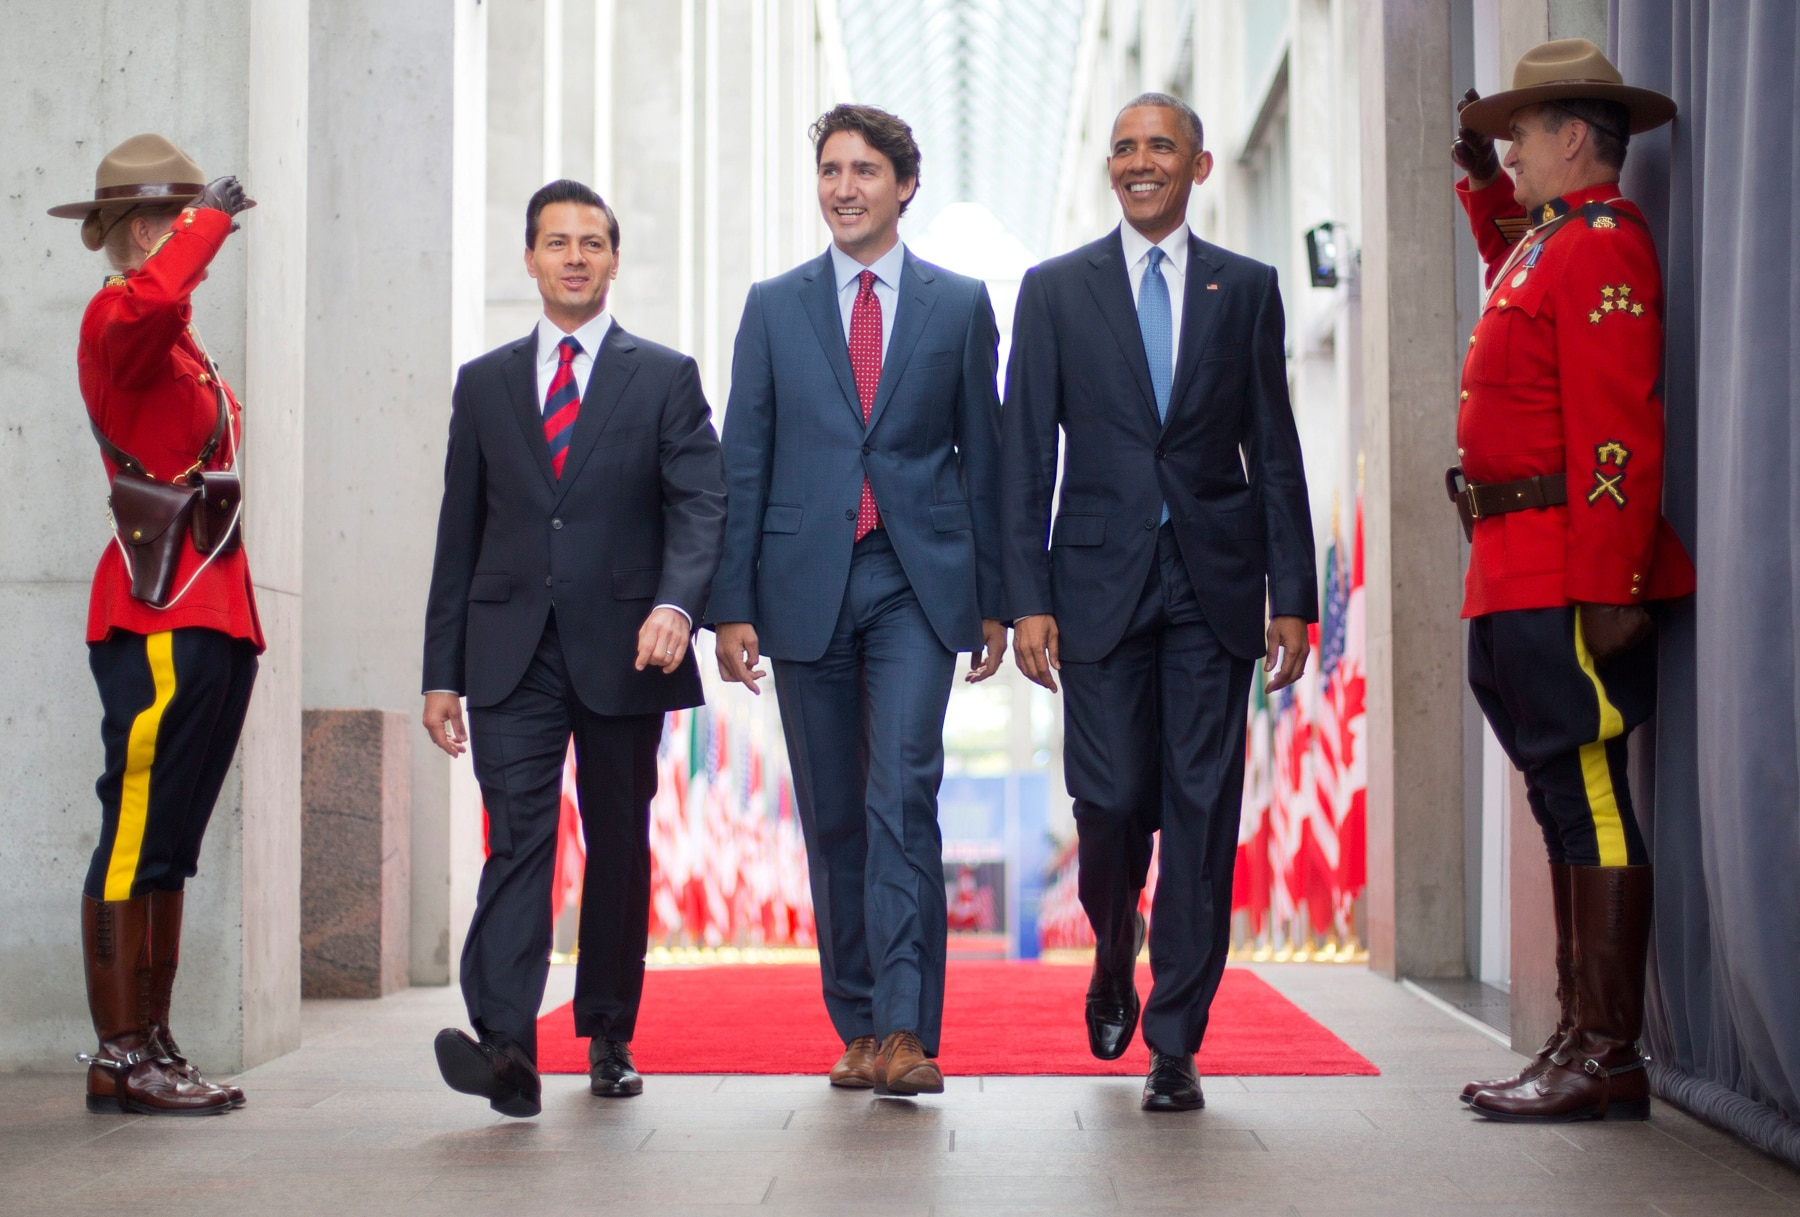 Enrique Peña Nieto, Justin Trudeau and President Obama walking past Canadian Mounties (© AP Images)